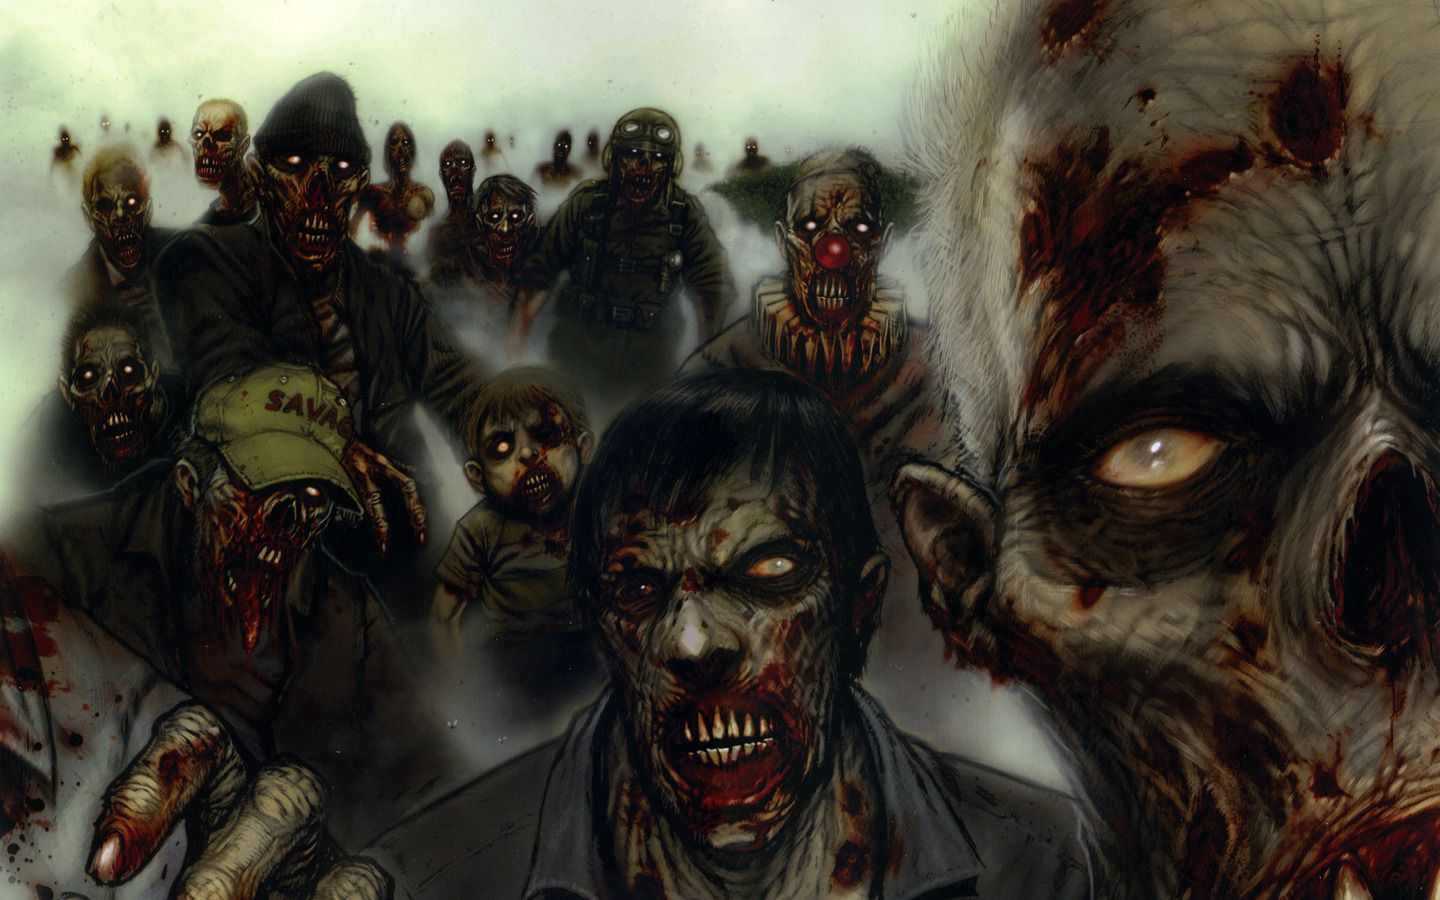 the Zombie Clown Horde Wallpaper Zombie Clown Horde iPhone Wallpaper 1440x900